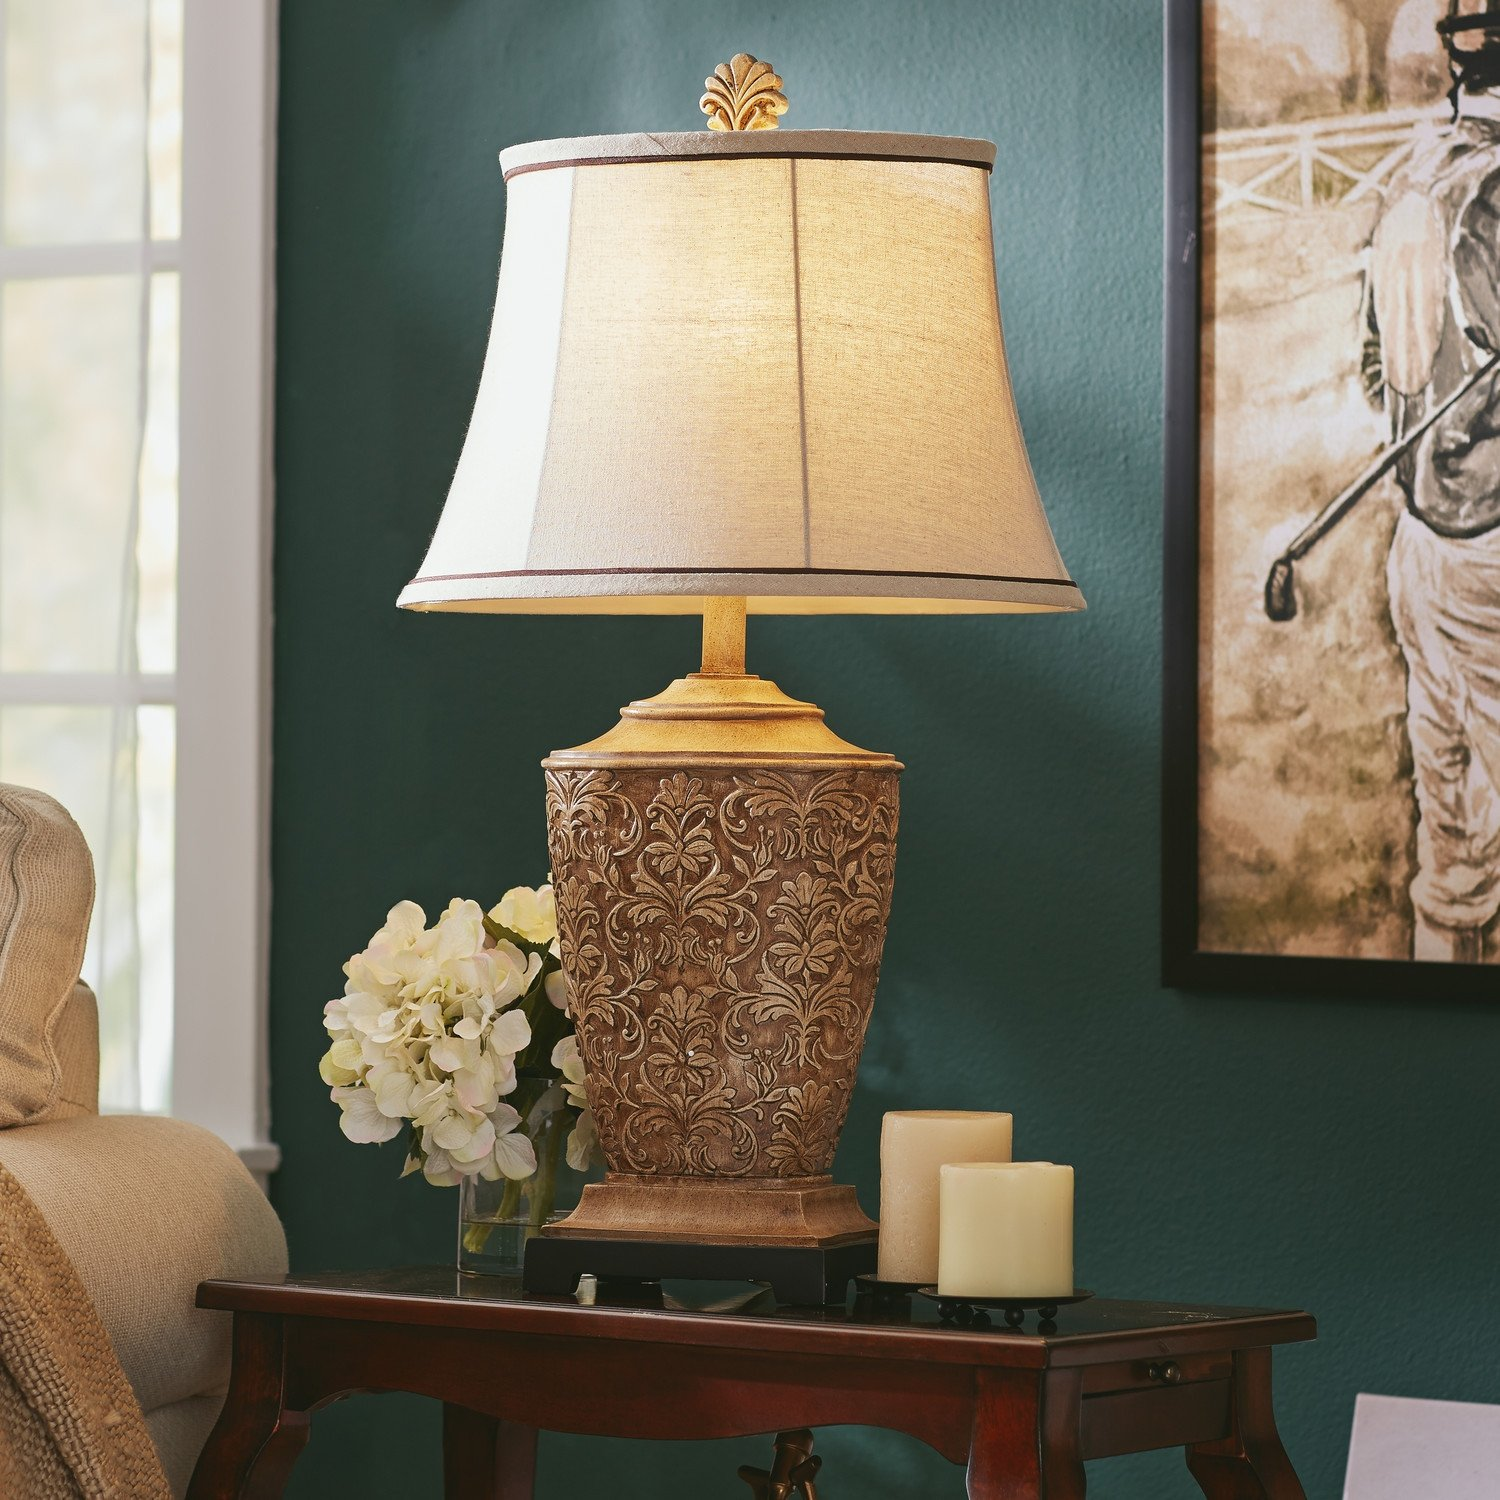 Traditional Living Room Lamps Fresh Traditional Table Lamps for Living Room Amazing Table Lamps for Living Room Traditional Cbrn